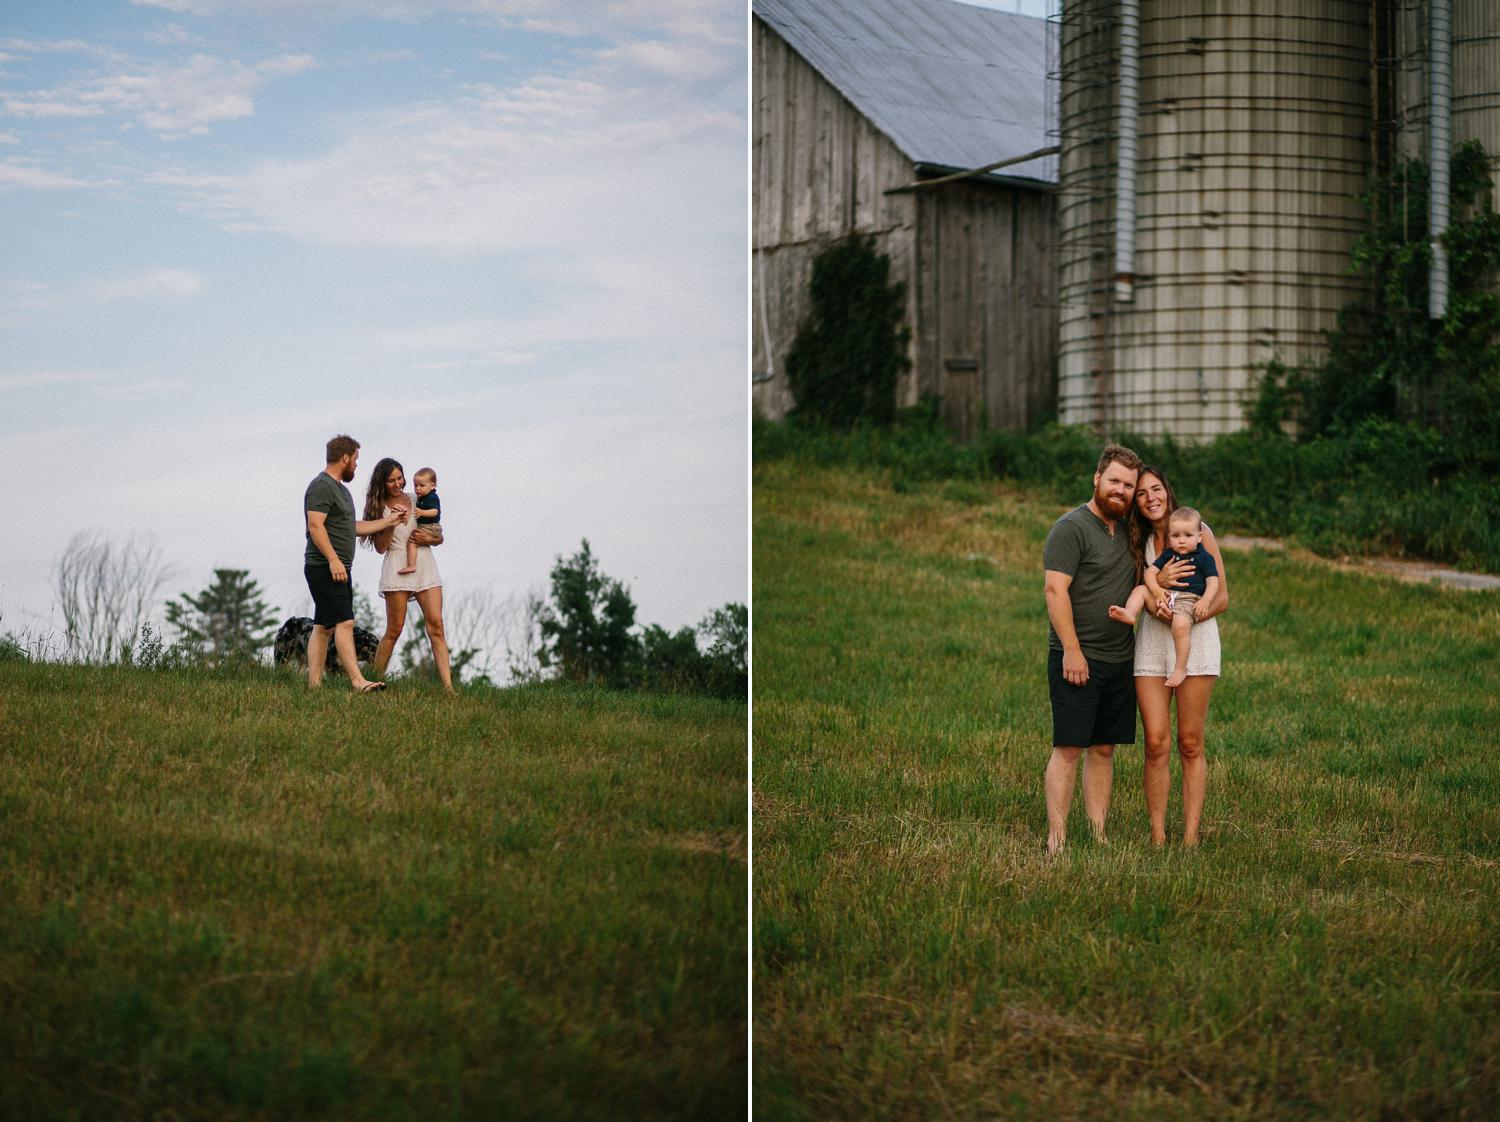 lanark highlands farm family photo session - kerry ford photography-013.jpg